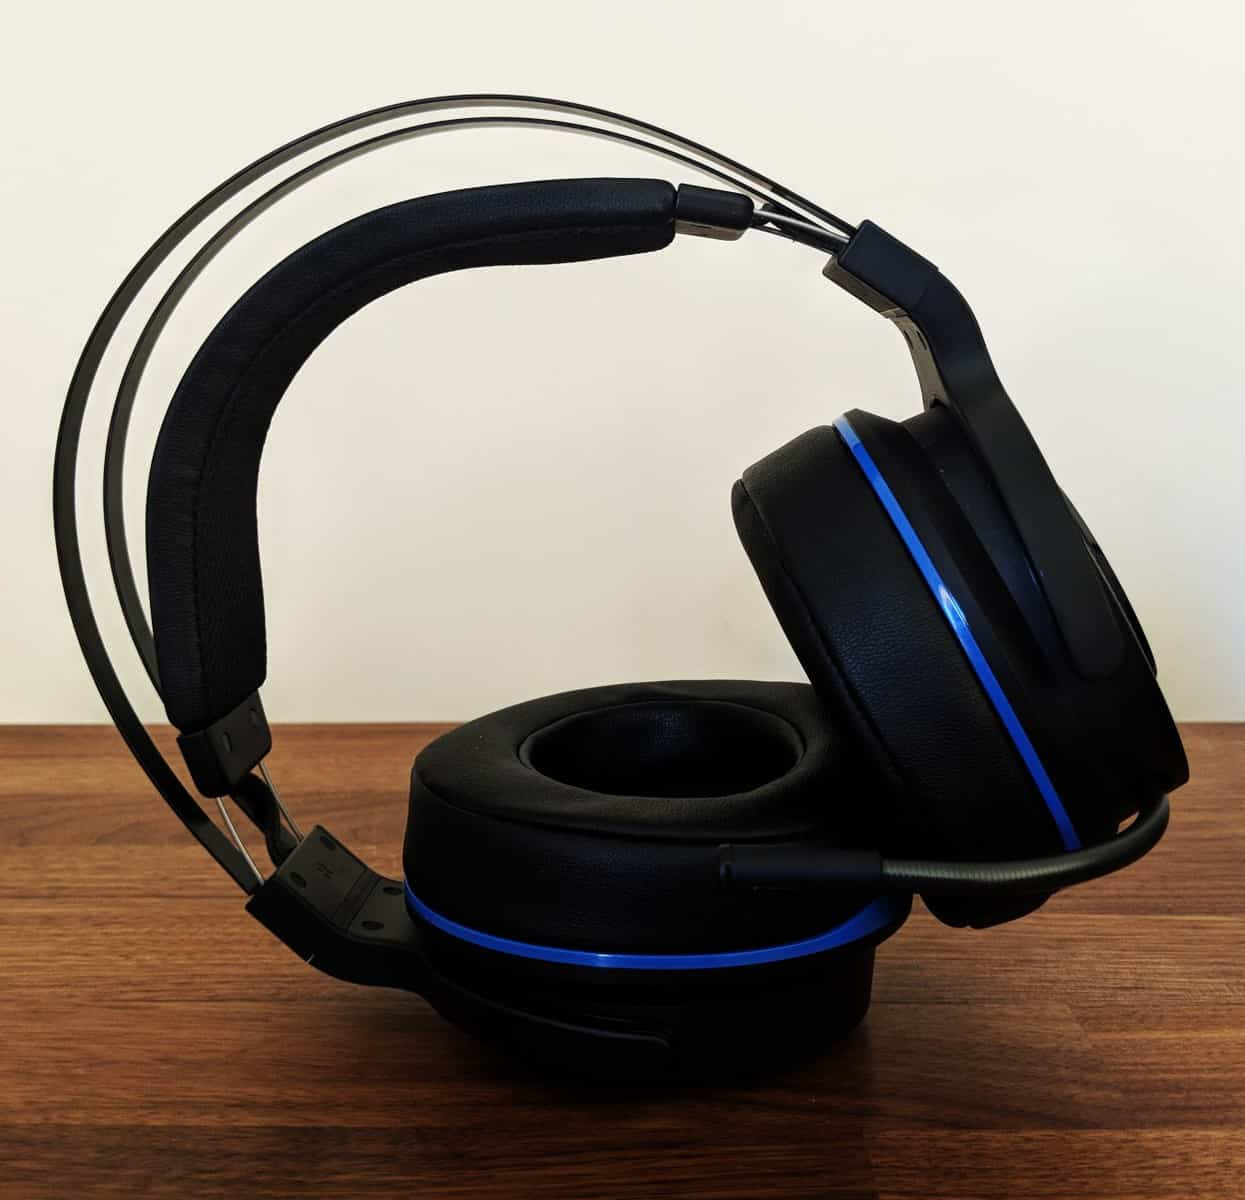 Razer Thresher PS4 Headset Review - The Streaming Blog